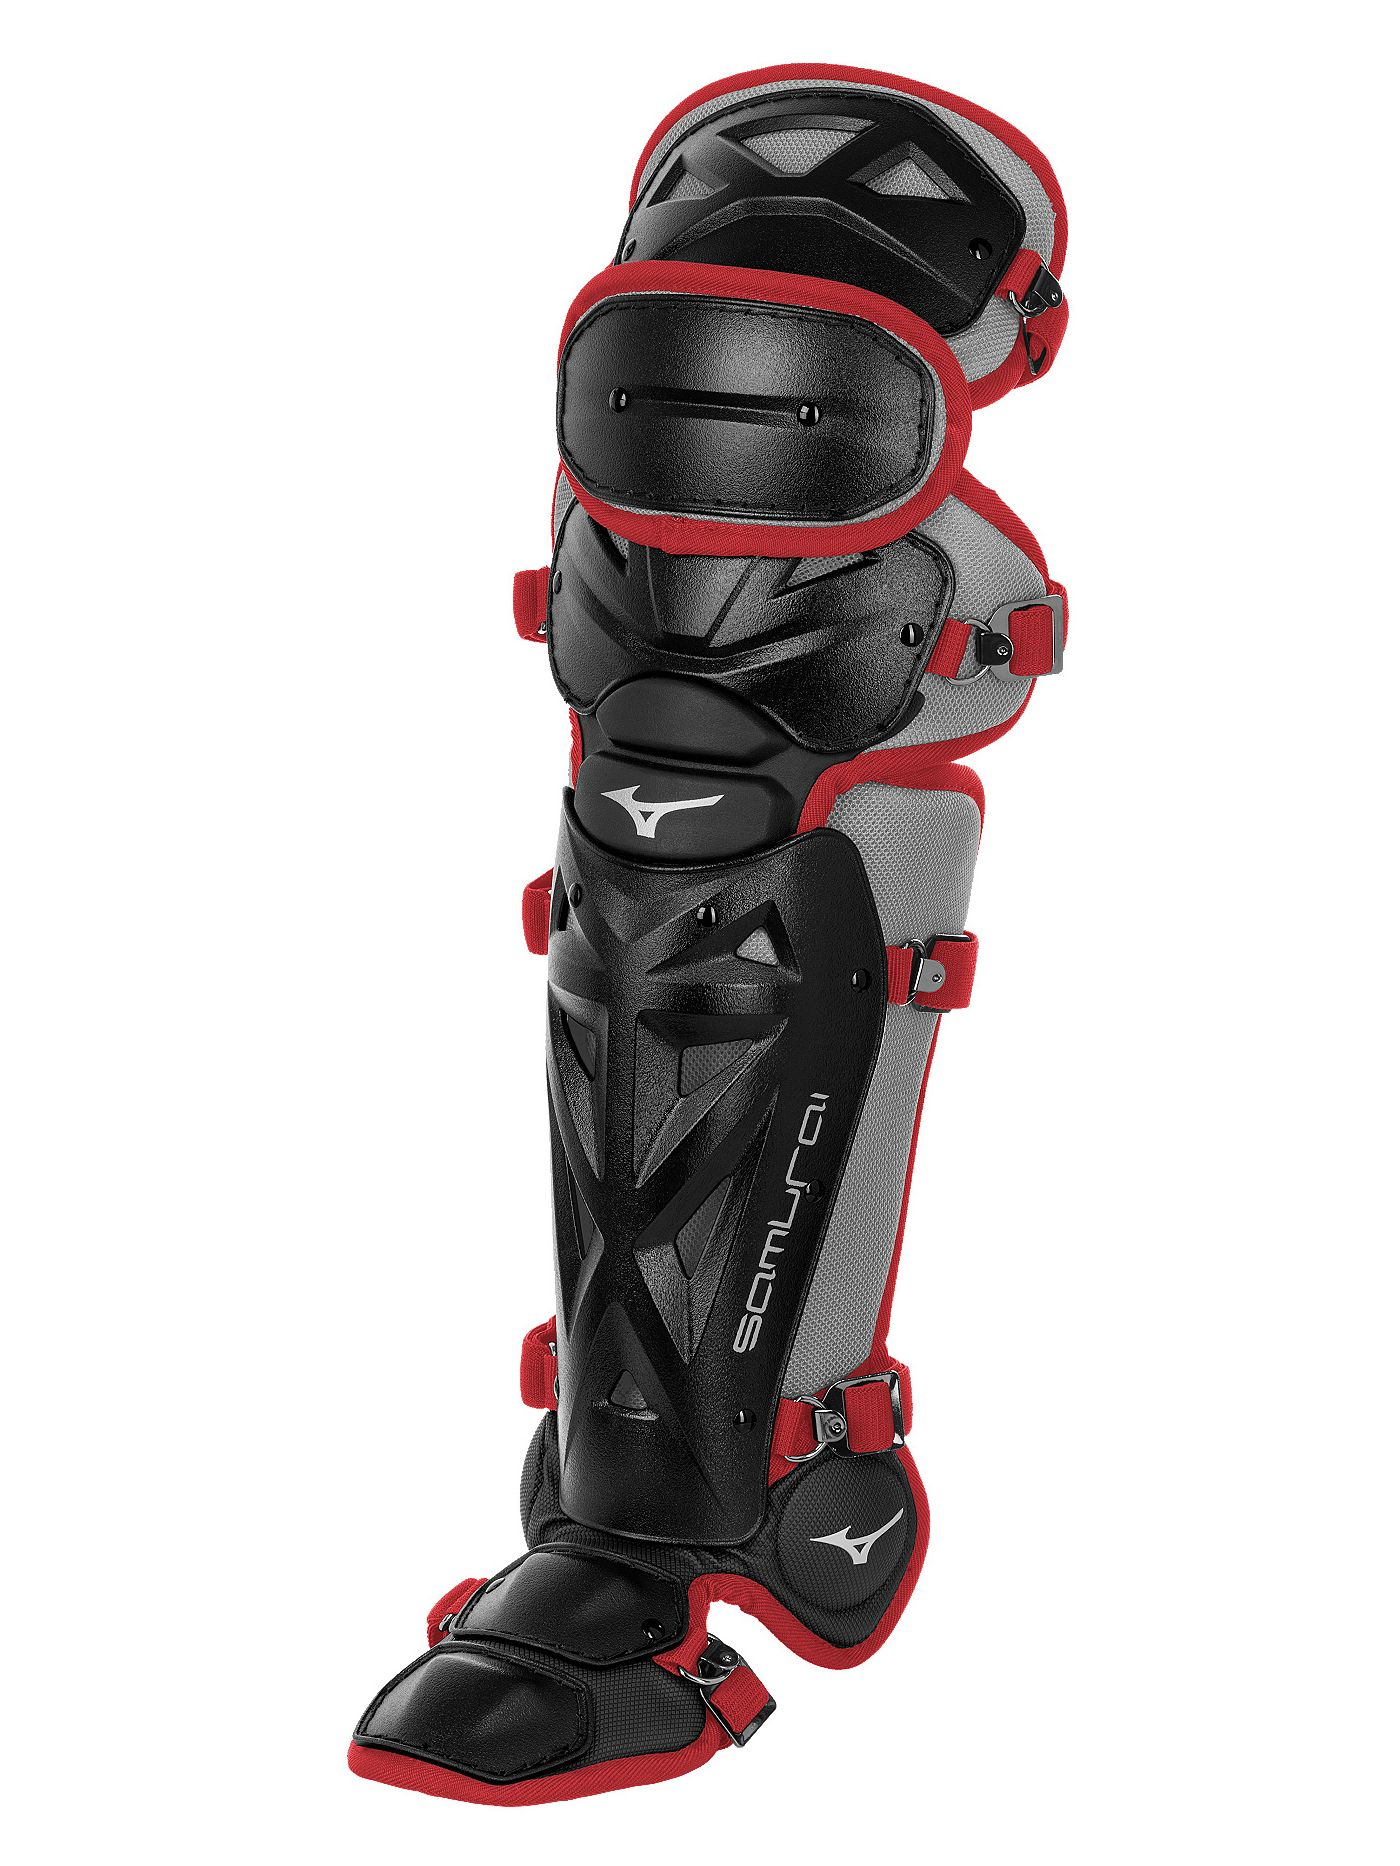 Mizuno Girls' Samurai Fastpitch Catcher's Leg Guards 2019